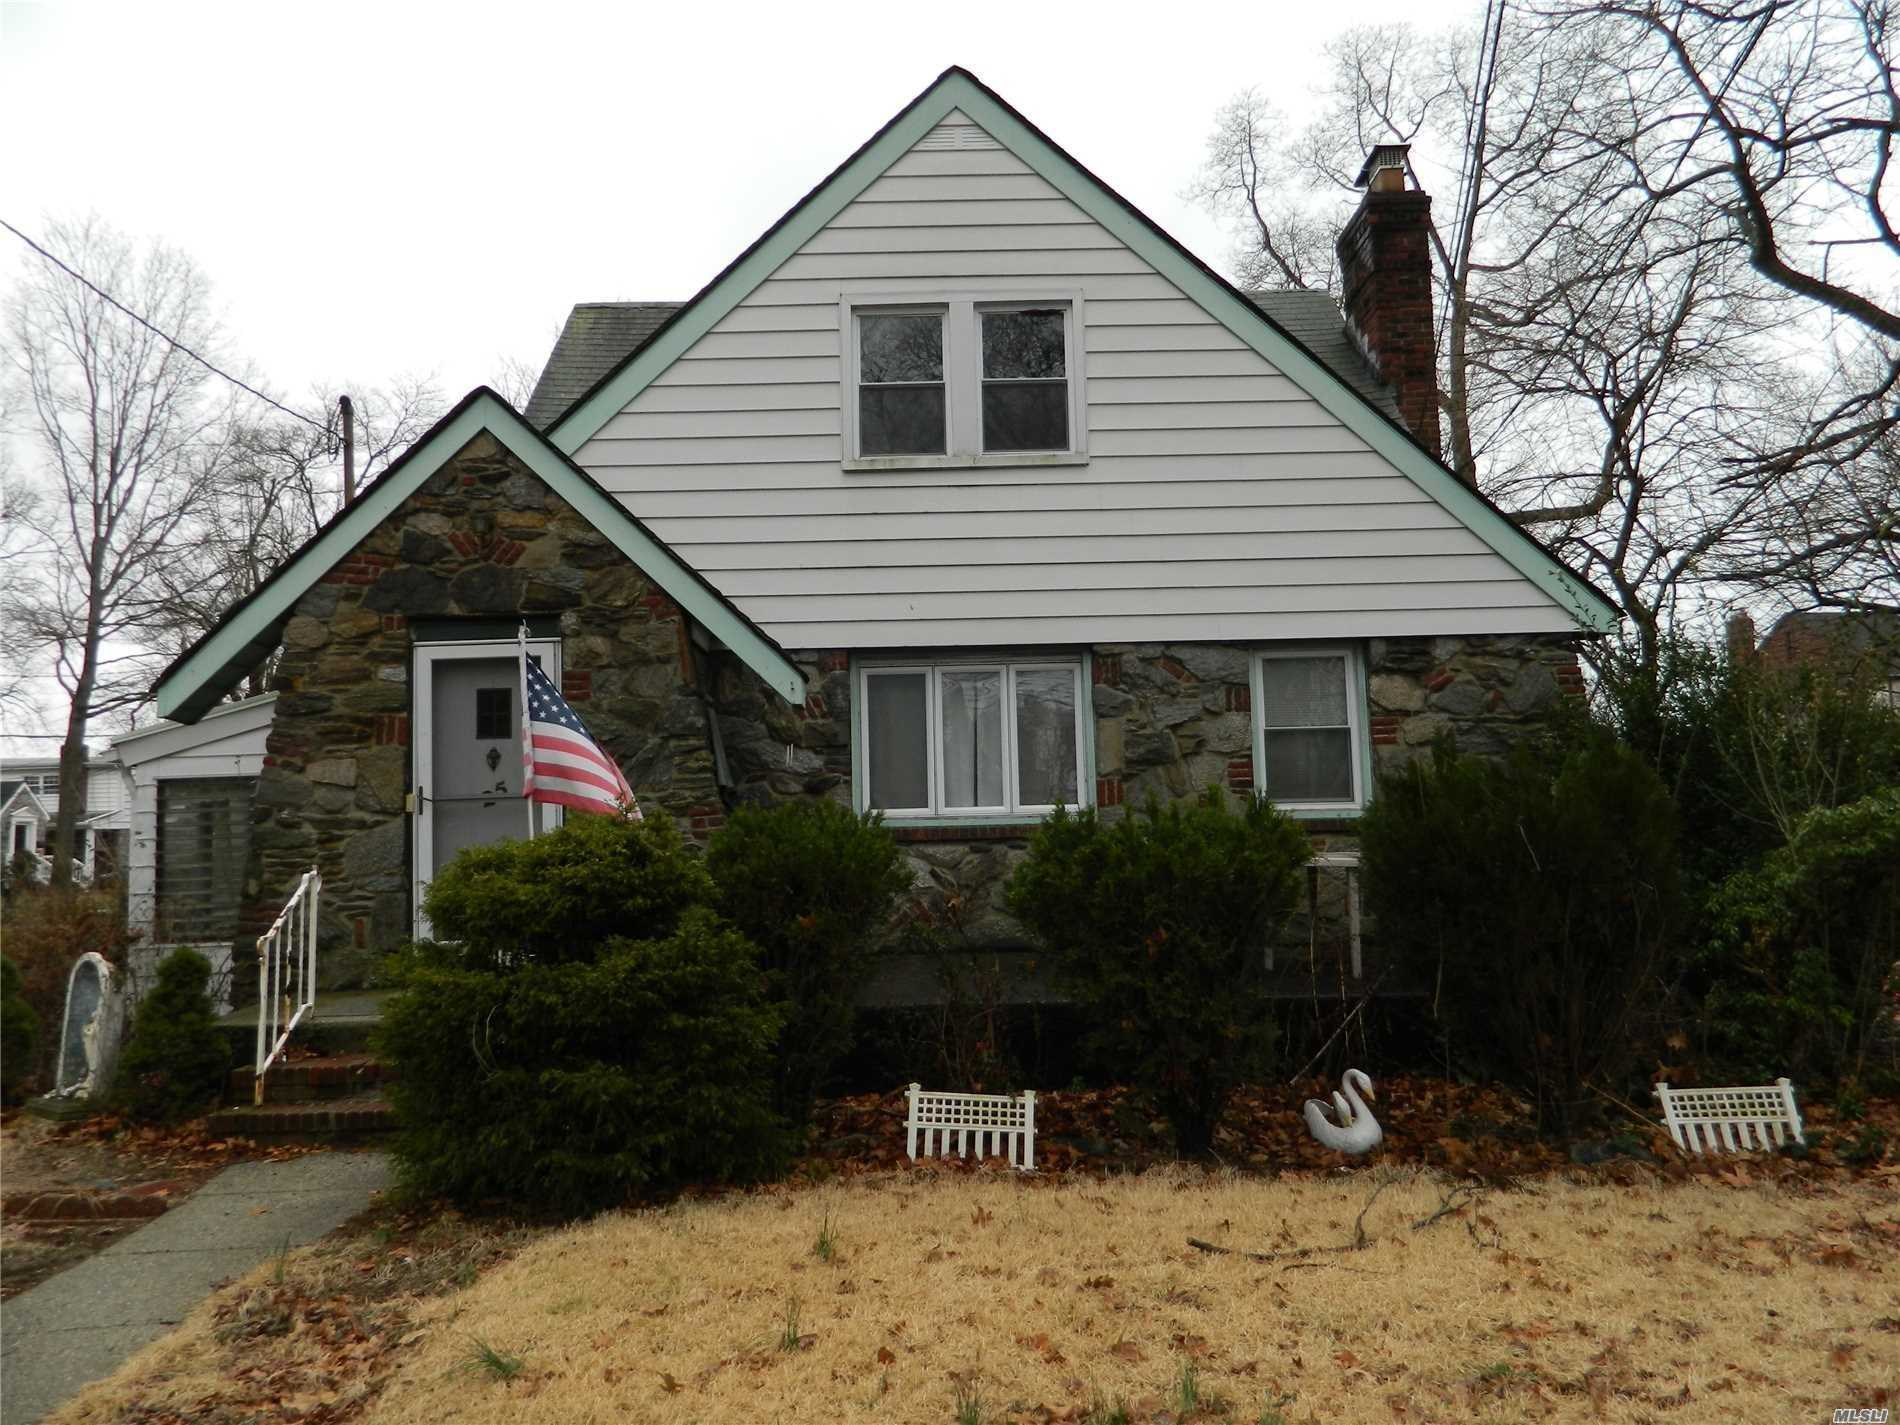 Legal 2 Family. 1Br Over 2 Br. Both Apartments Have Lr, Dr, Eik And Full Bath. Full Basement With Hi Ceilings. Large Corner Property With 1 Car Garage. Desirable West Wood Section. Close To Lirr, Schools, Shopping And Highways. House Needs Tlc But Comes With Great Potential.